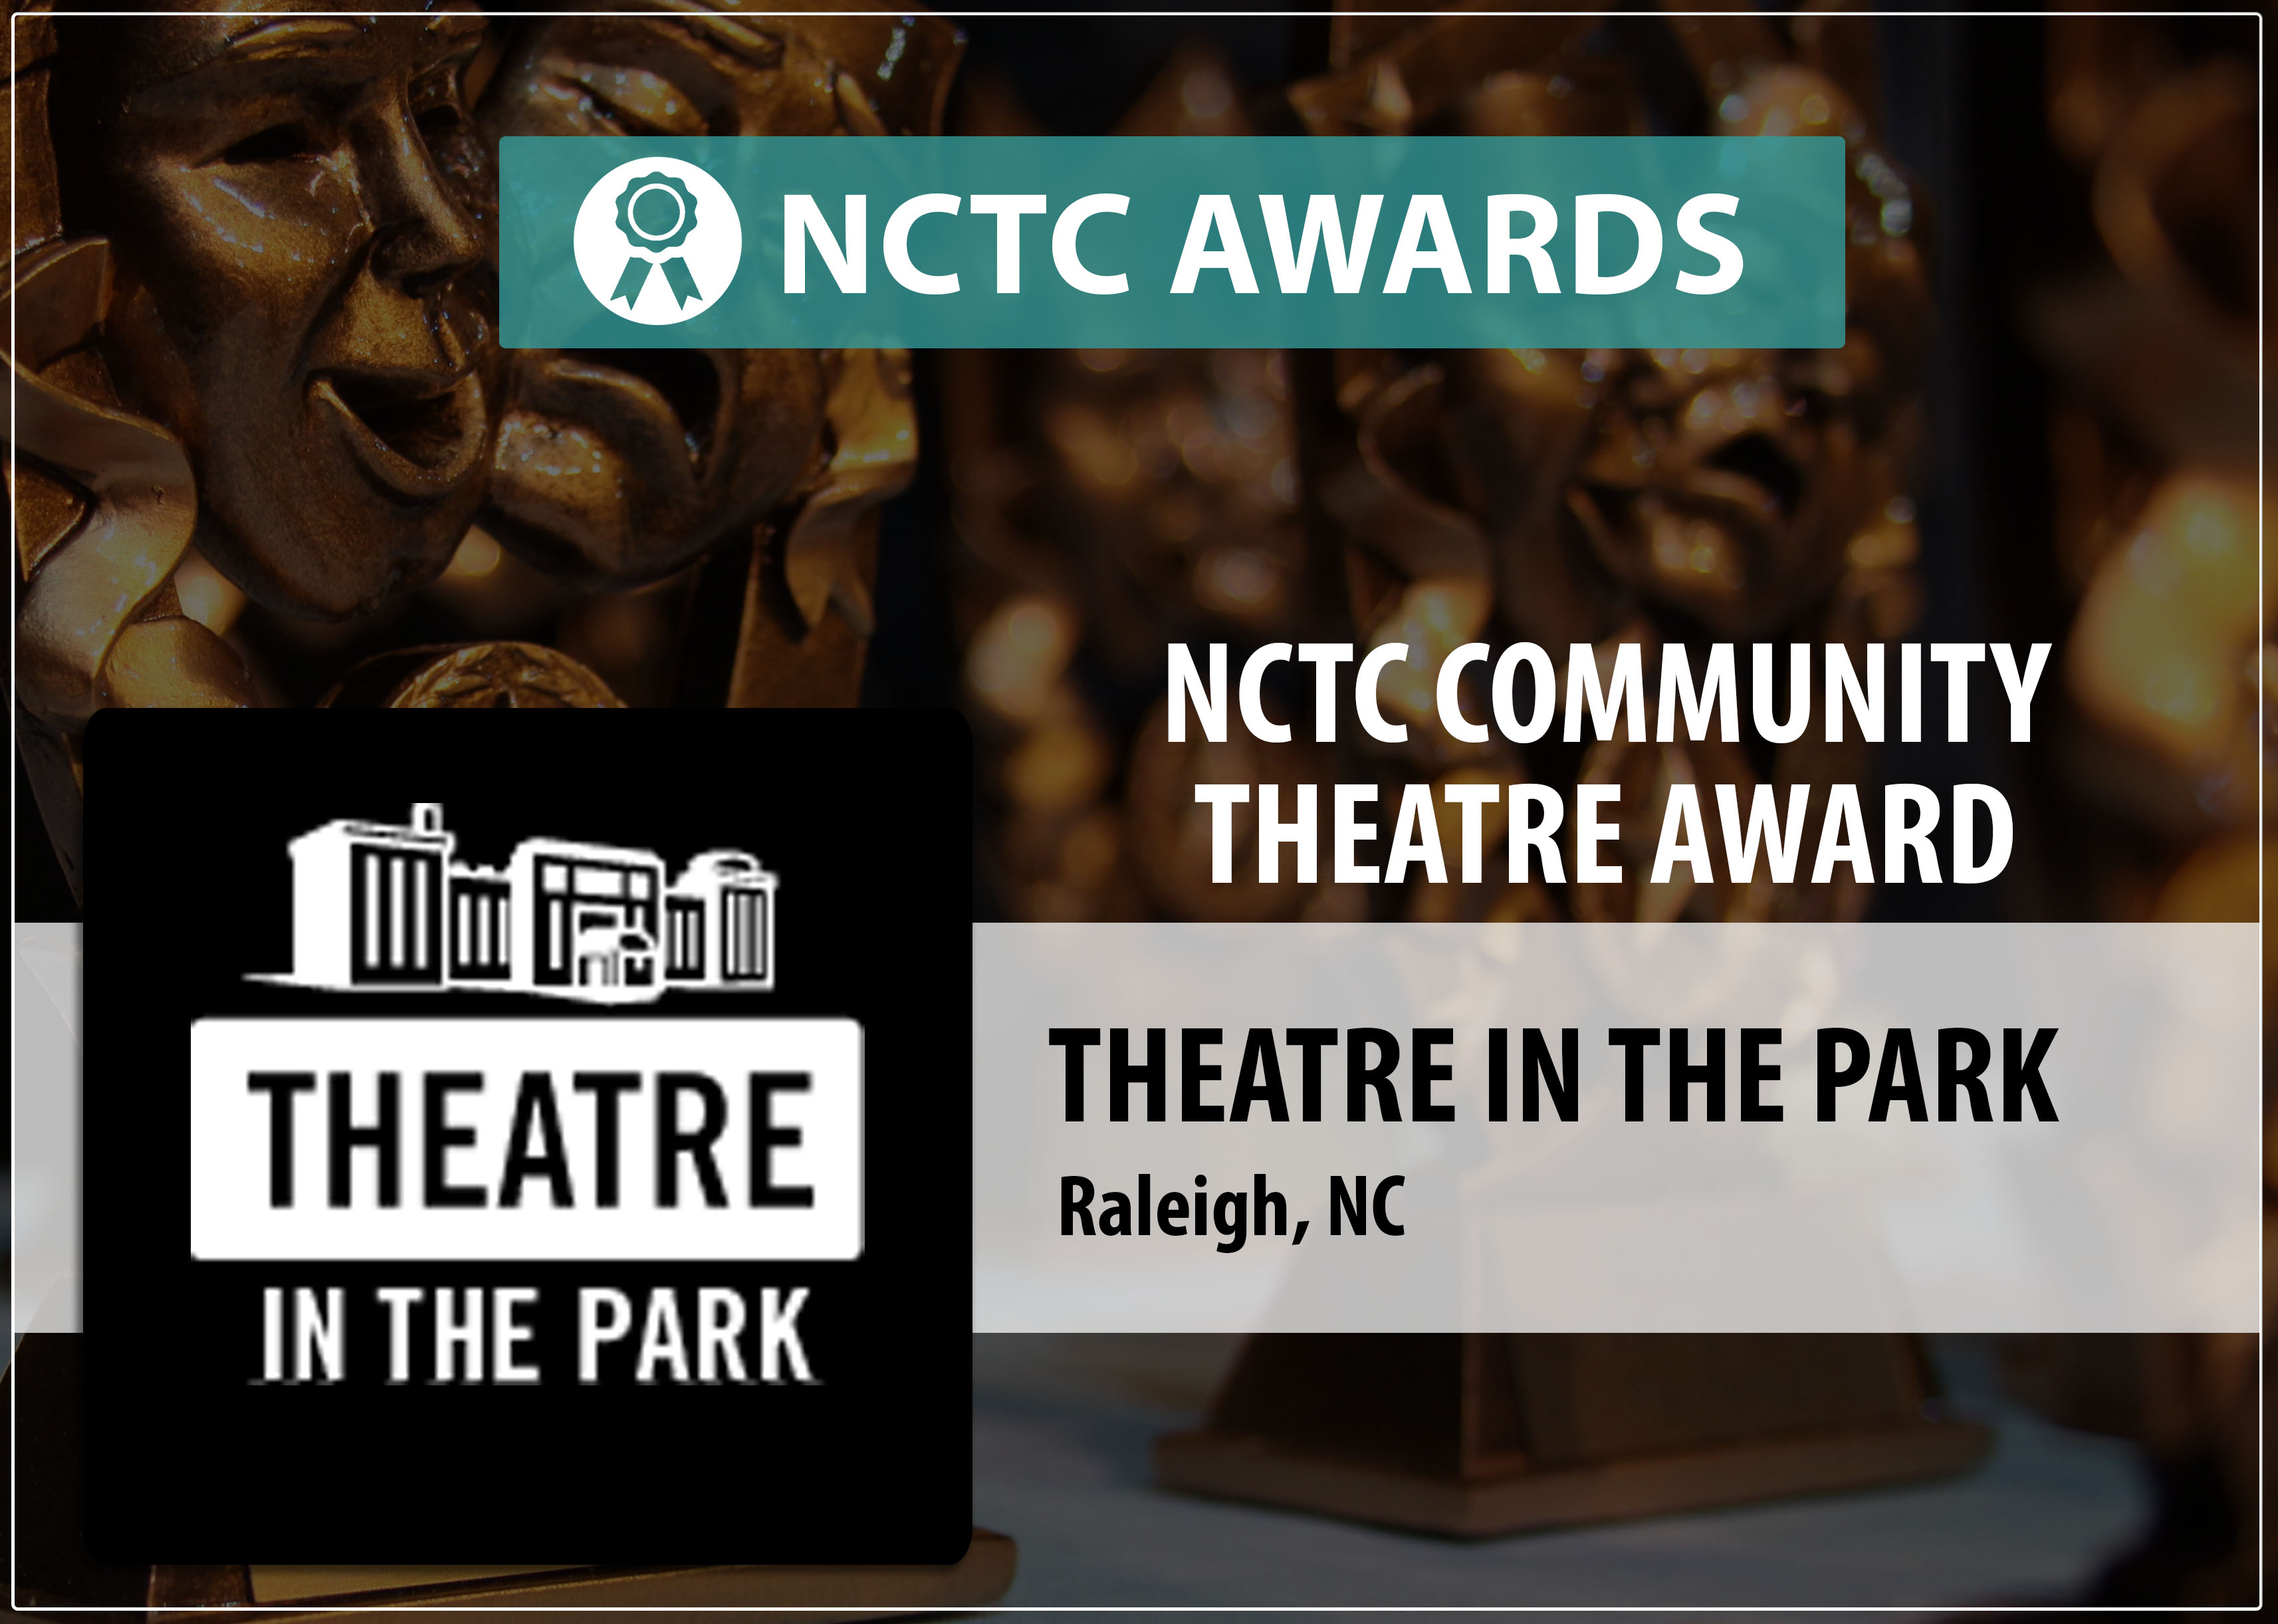 NCTC Community Theatre Award Recipient Theatre in the Park